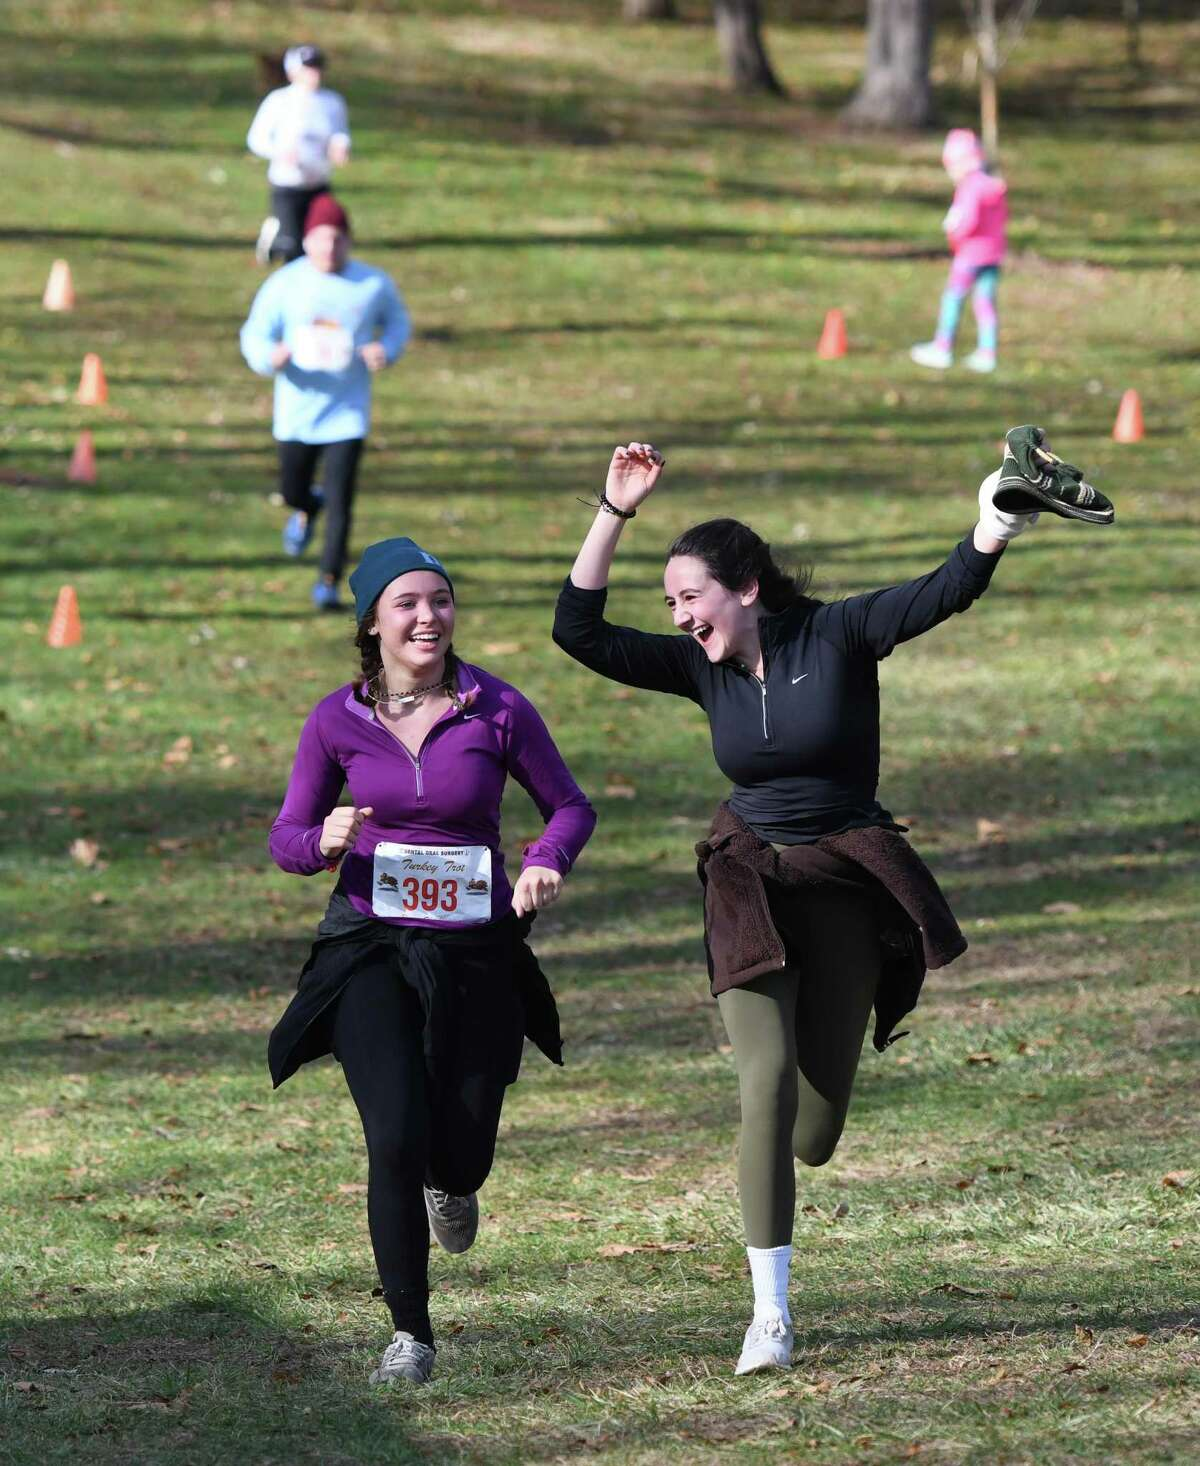 Stamford's Sophie Pigott, left, 16, and Norwalk's Cayla Bernstein, 16, celebrate as they cross the finish line at the 2019 Dental Oral Surgery Turkey Trot Beachfront Bushwhack at Greenwich Point Park in Old Greenwich, Conn. Thursday, Nov. 28, 2019. Presented by Dental Oral Surgery and Threads & Treads, 500 runners competed in the five mile cross-country race and kid's one mile fun run.